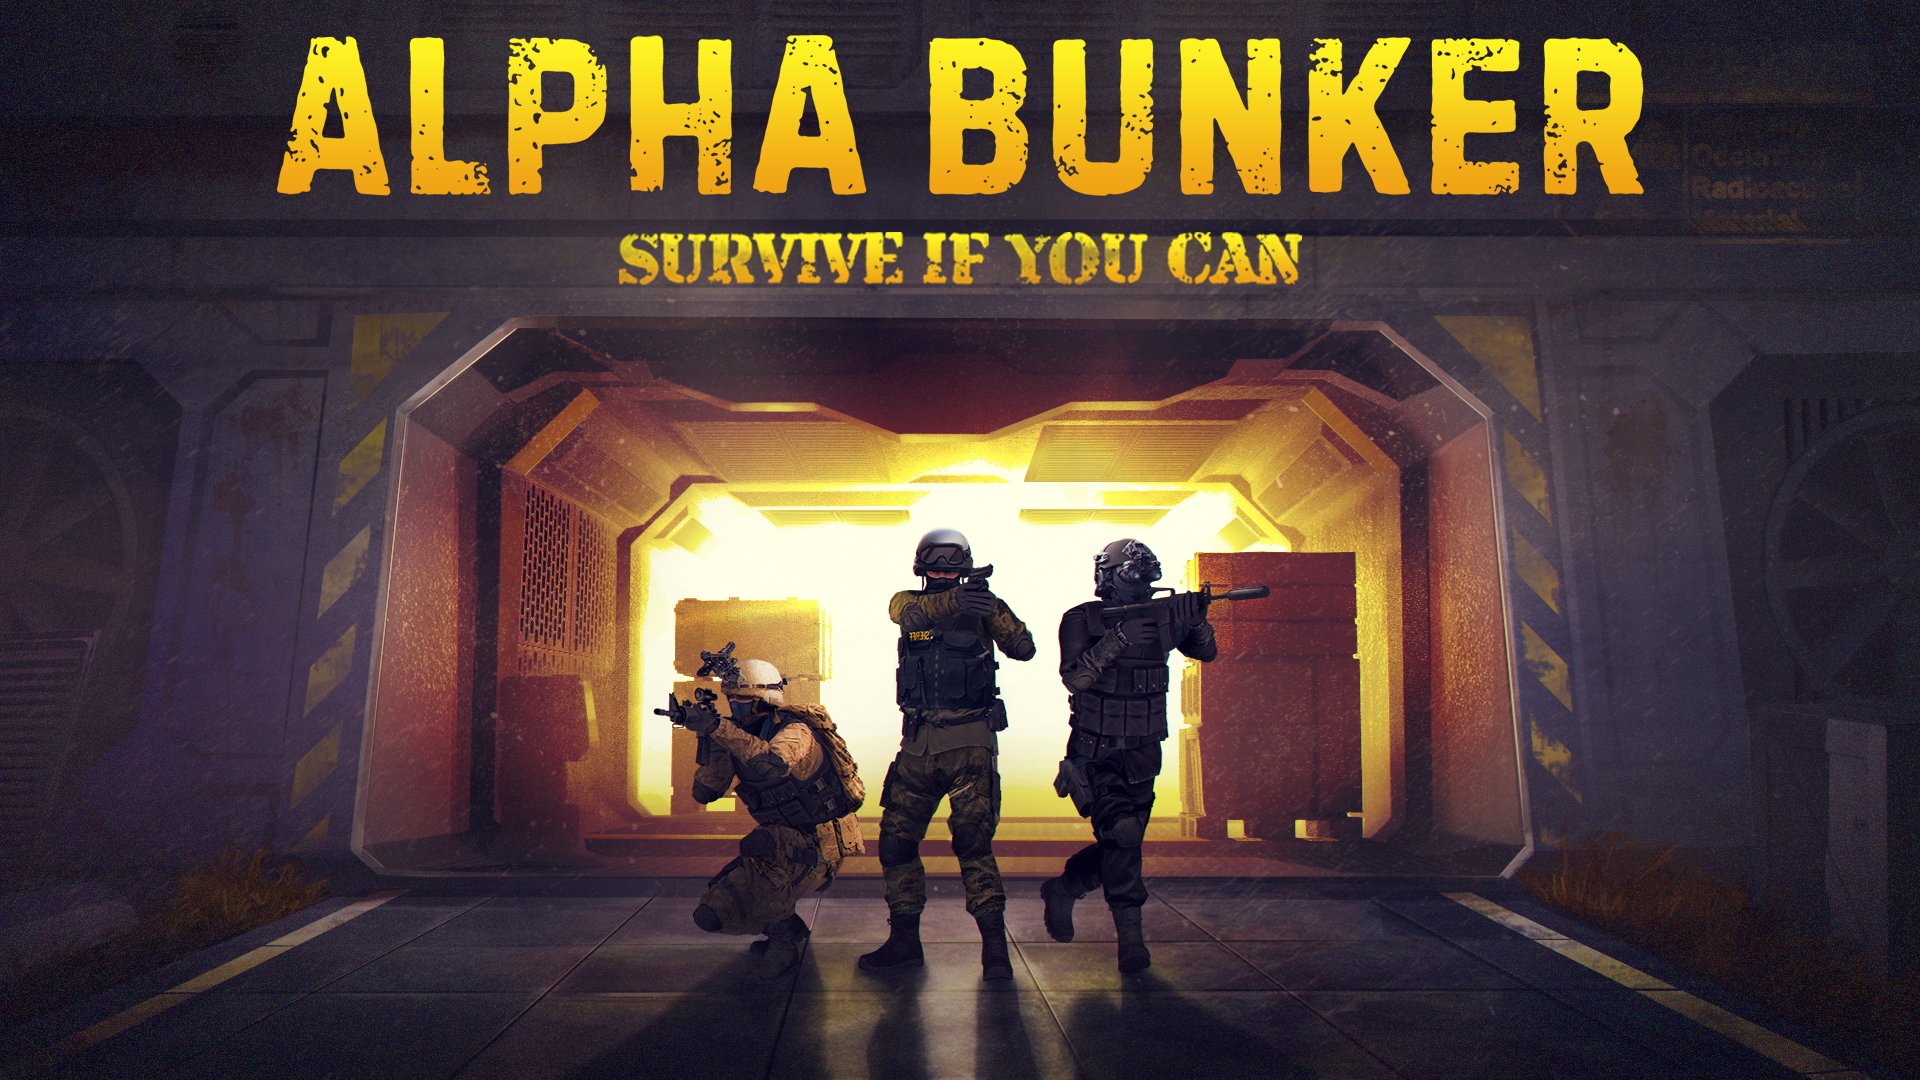 Black Void Studios told us why you should fund Alpha Bunker, now live on Kickstarter